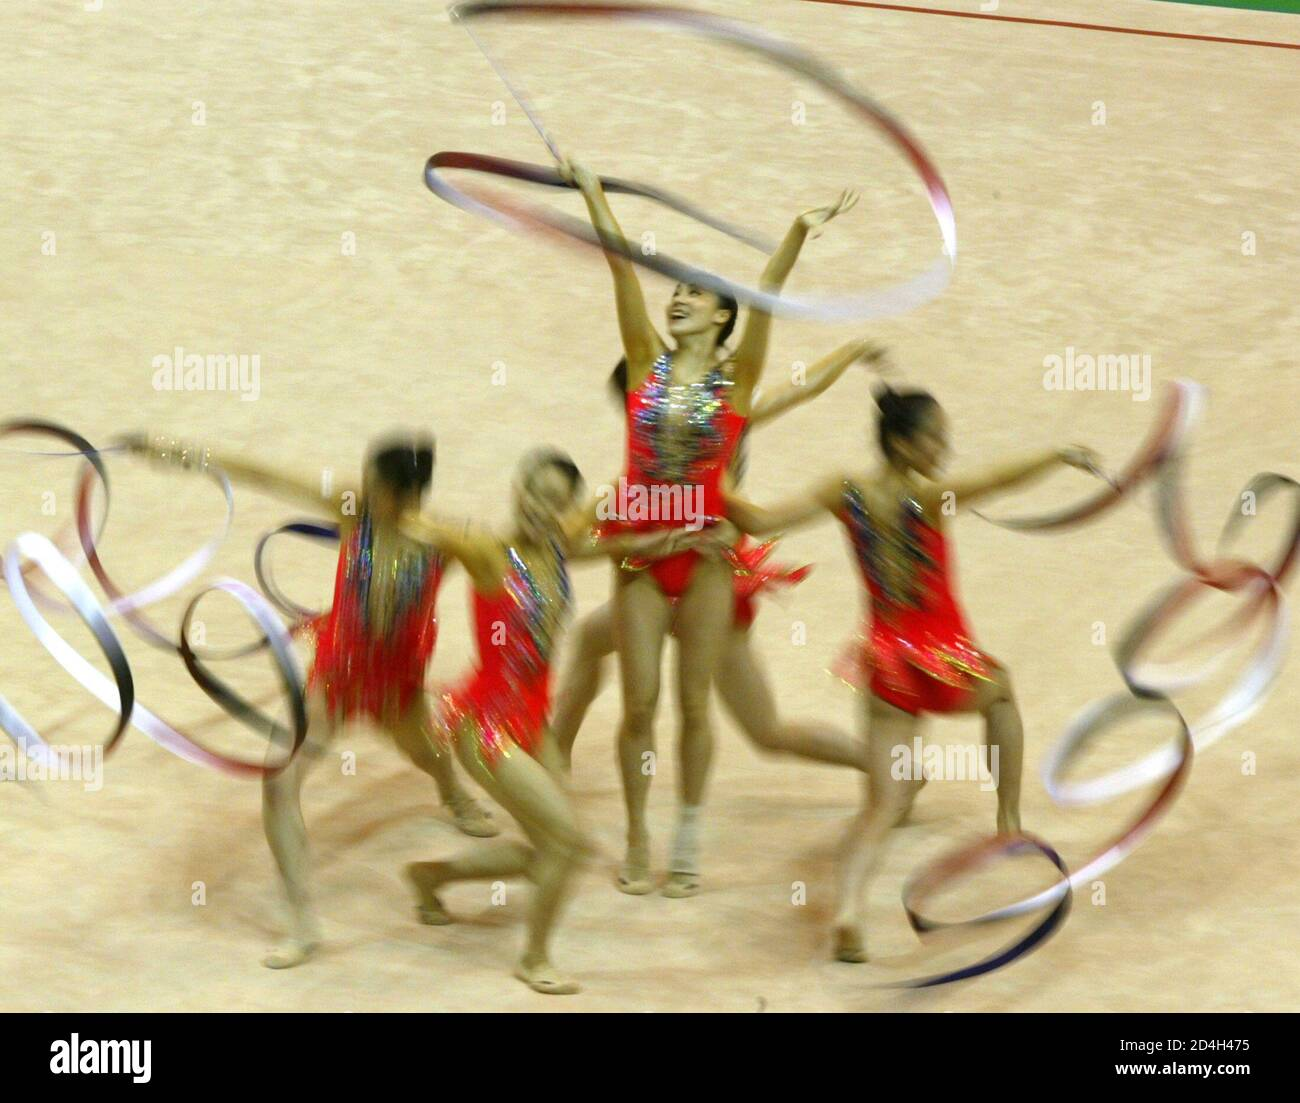 JAPANESE PLAYERS PERFORM DURING THE FINAL OF RHYTHMIC GYMNASTICS AT THE UNIVERSIADE GAMES IN KYEONGJU. Stock Photo